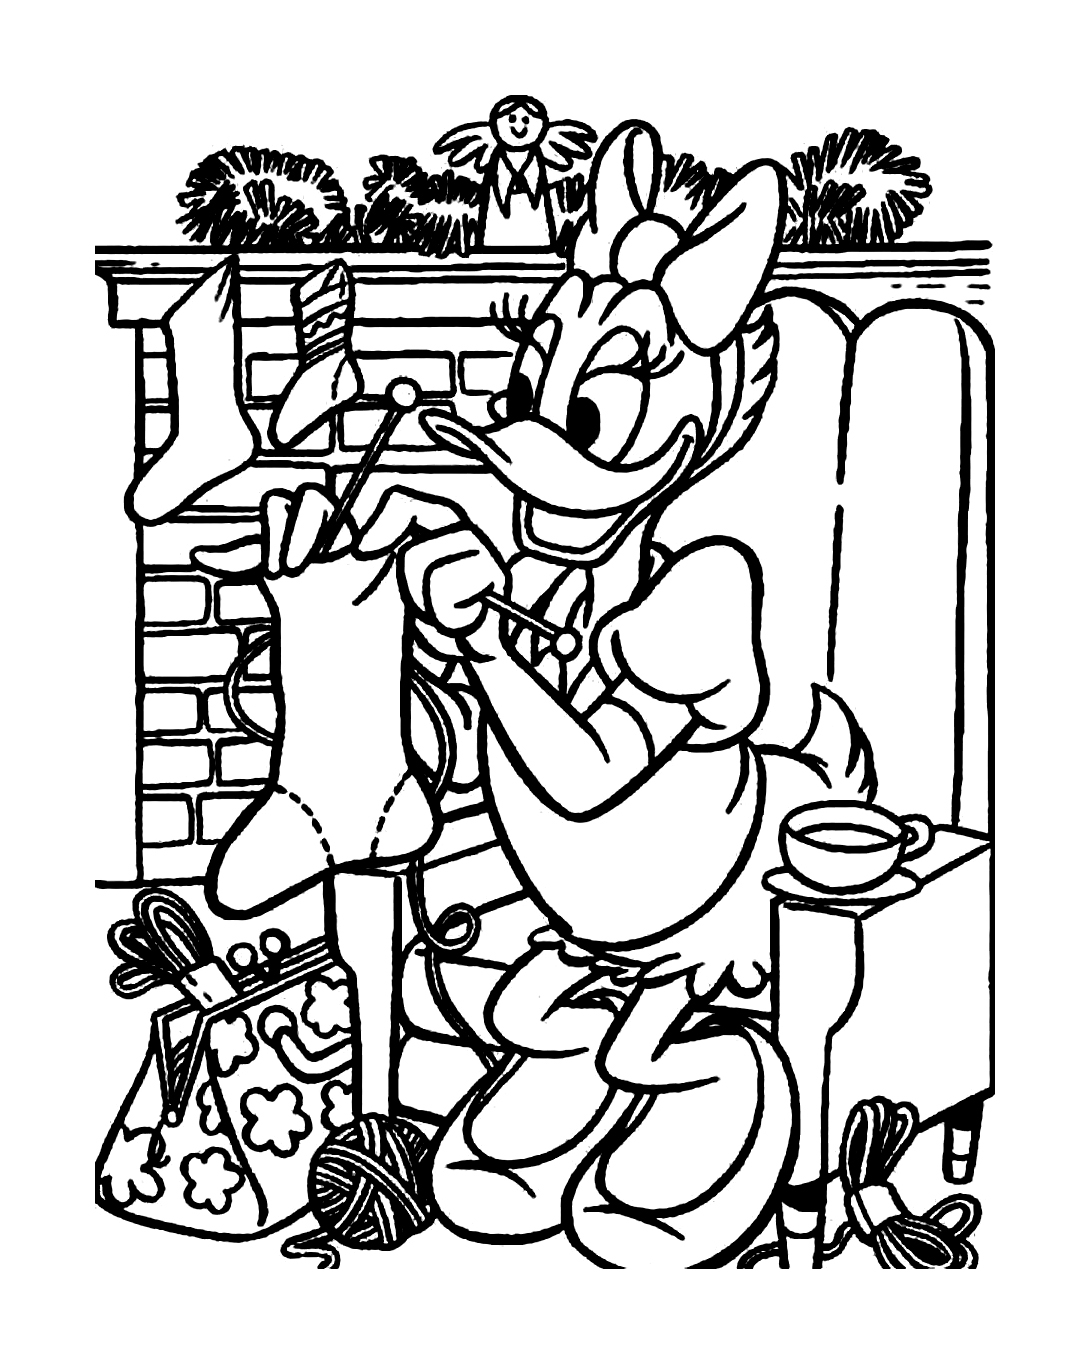 Daisy Free To Color For Children Daisy Kids Coloring Pages